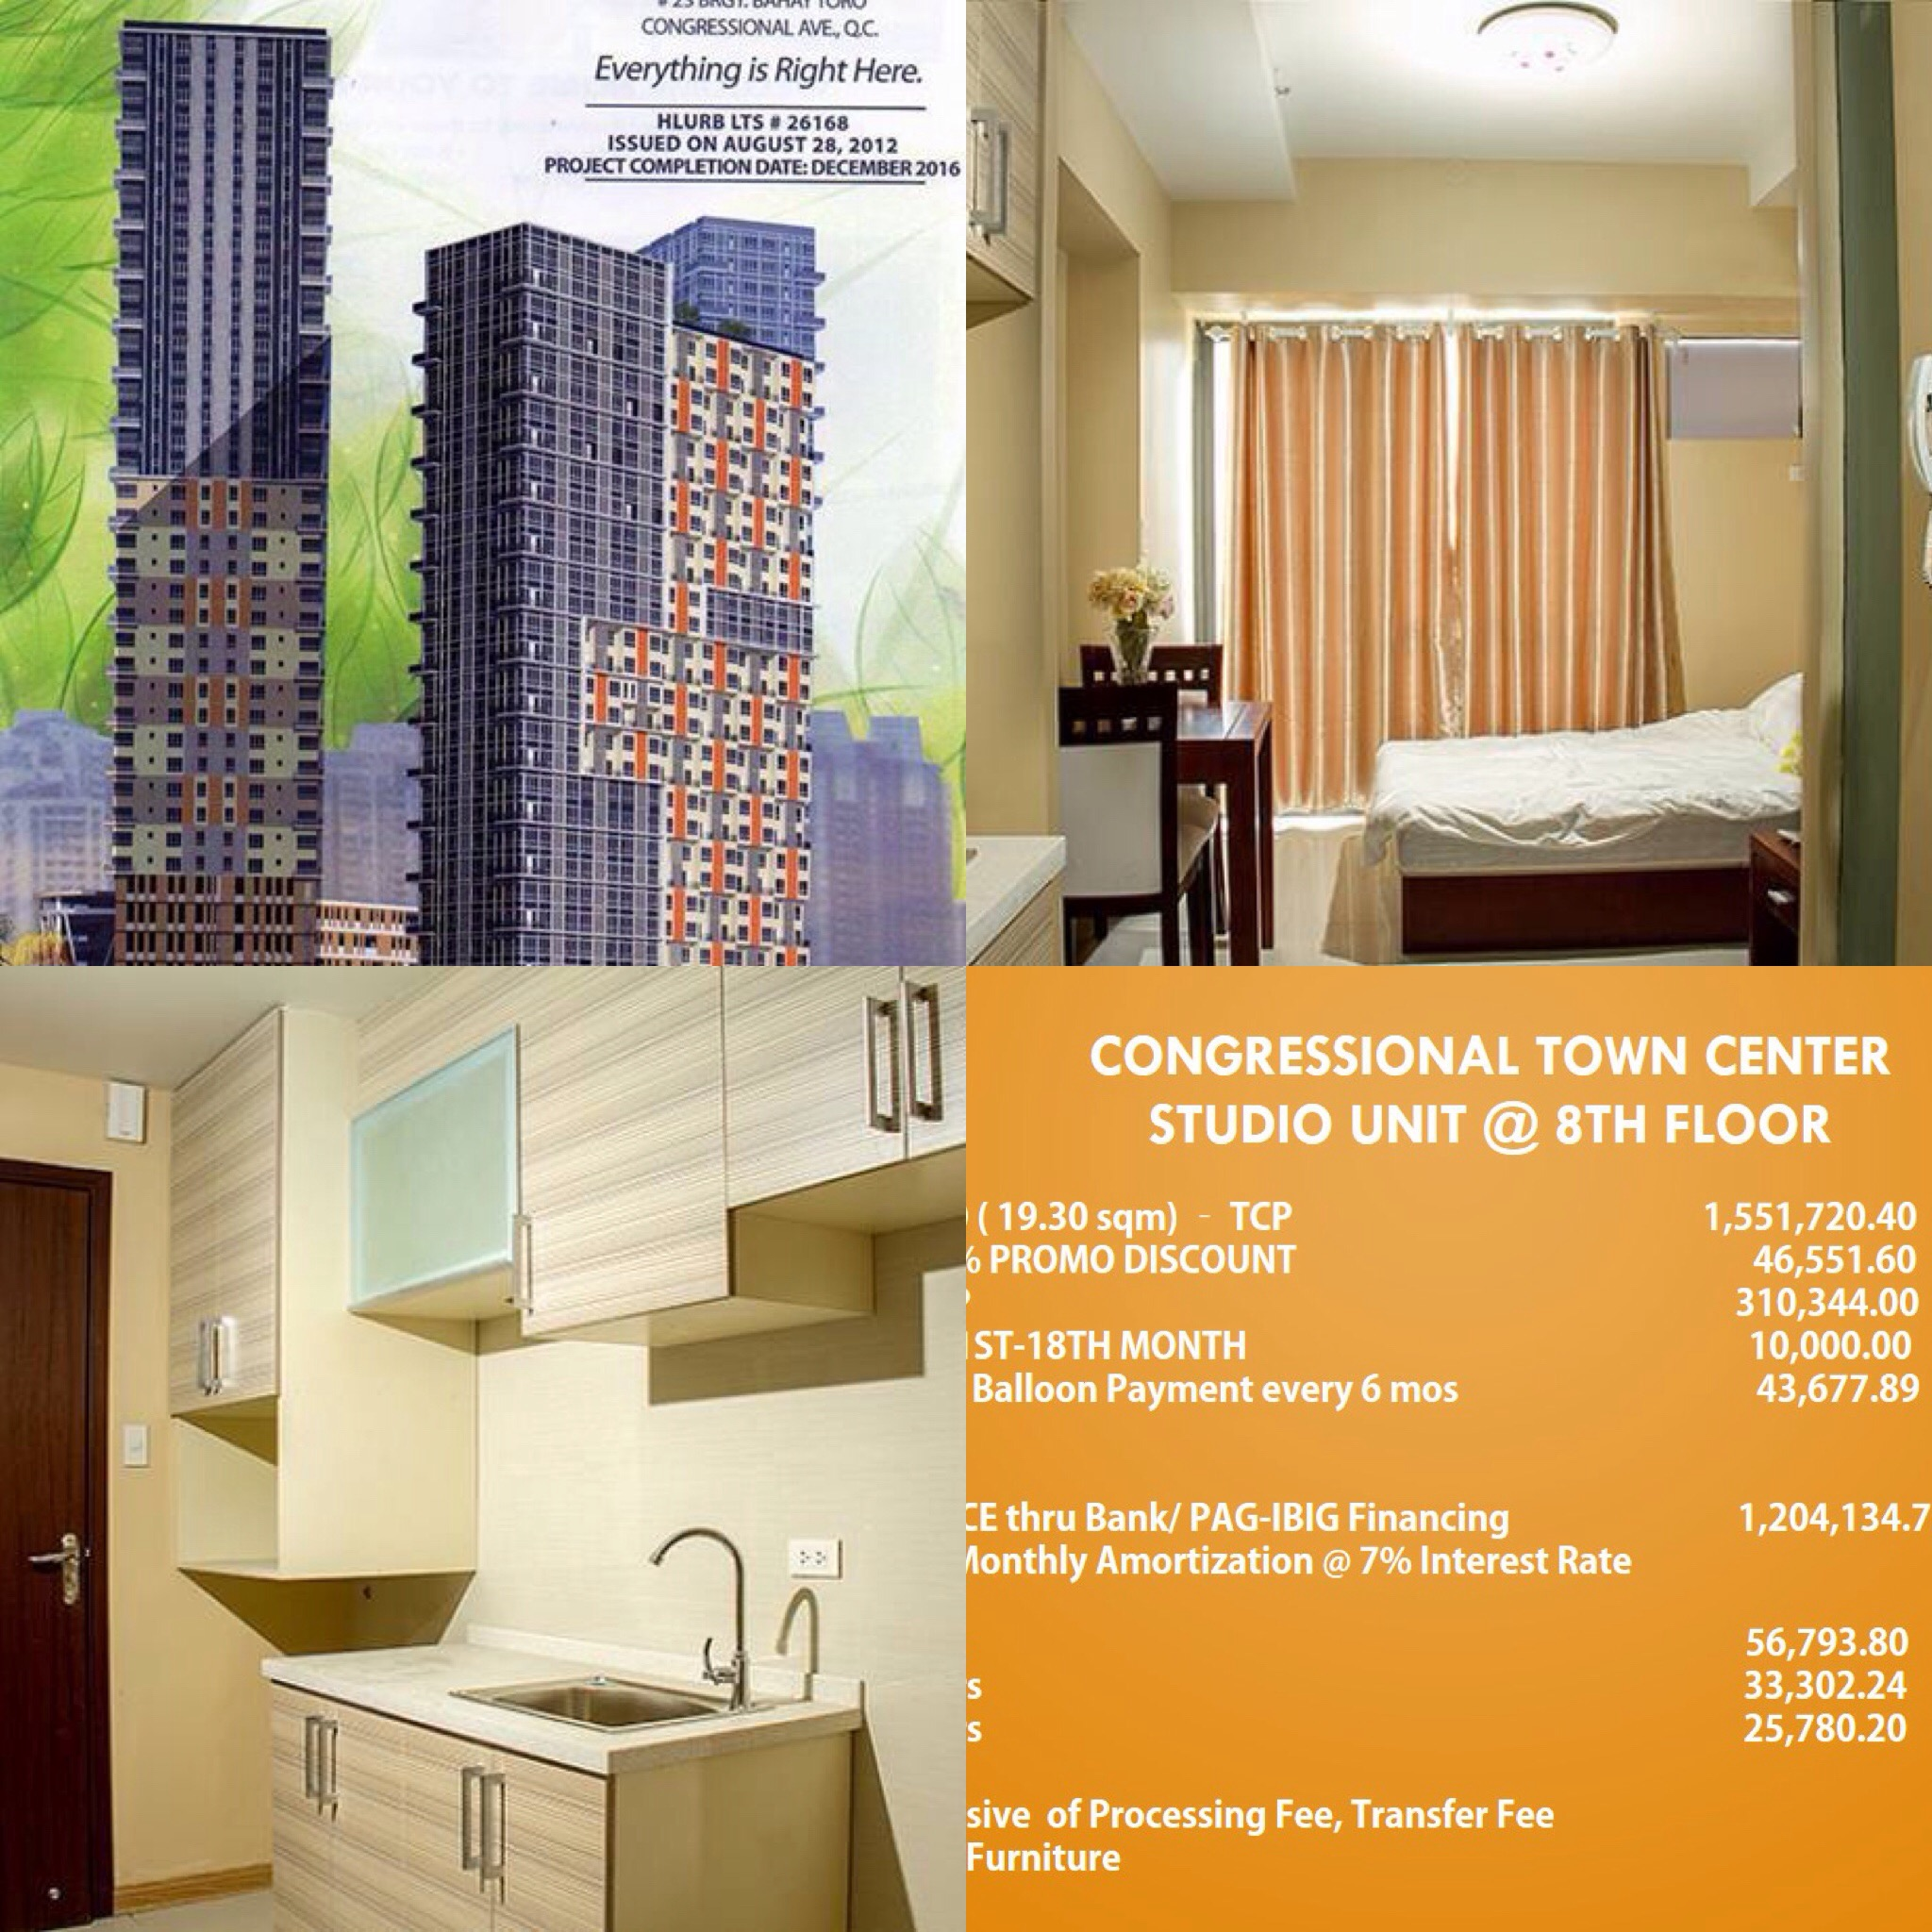 congressional ave qc condo for sale 2br 09176747343 rico navarro